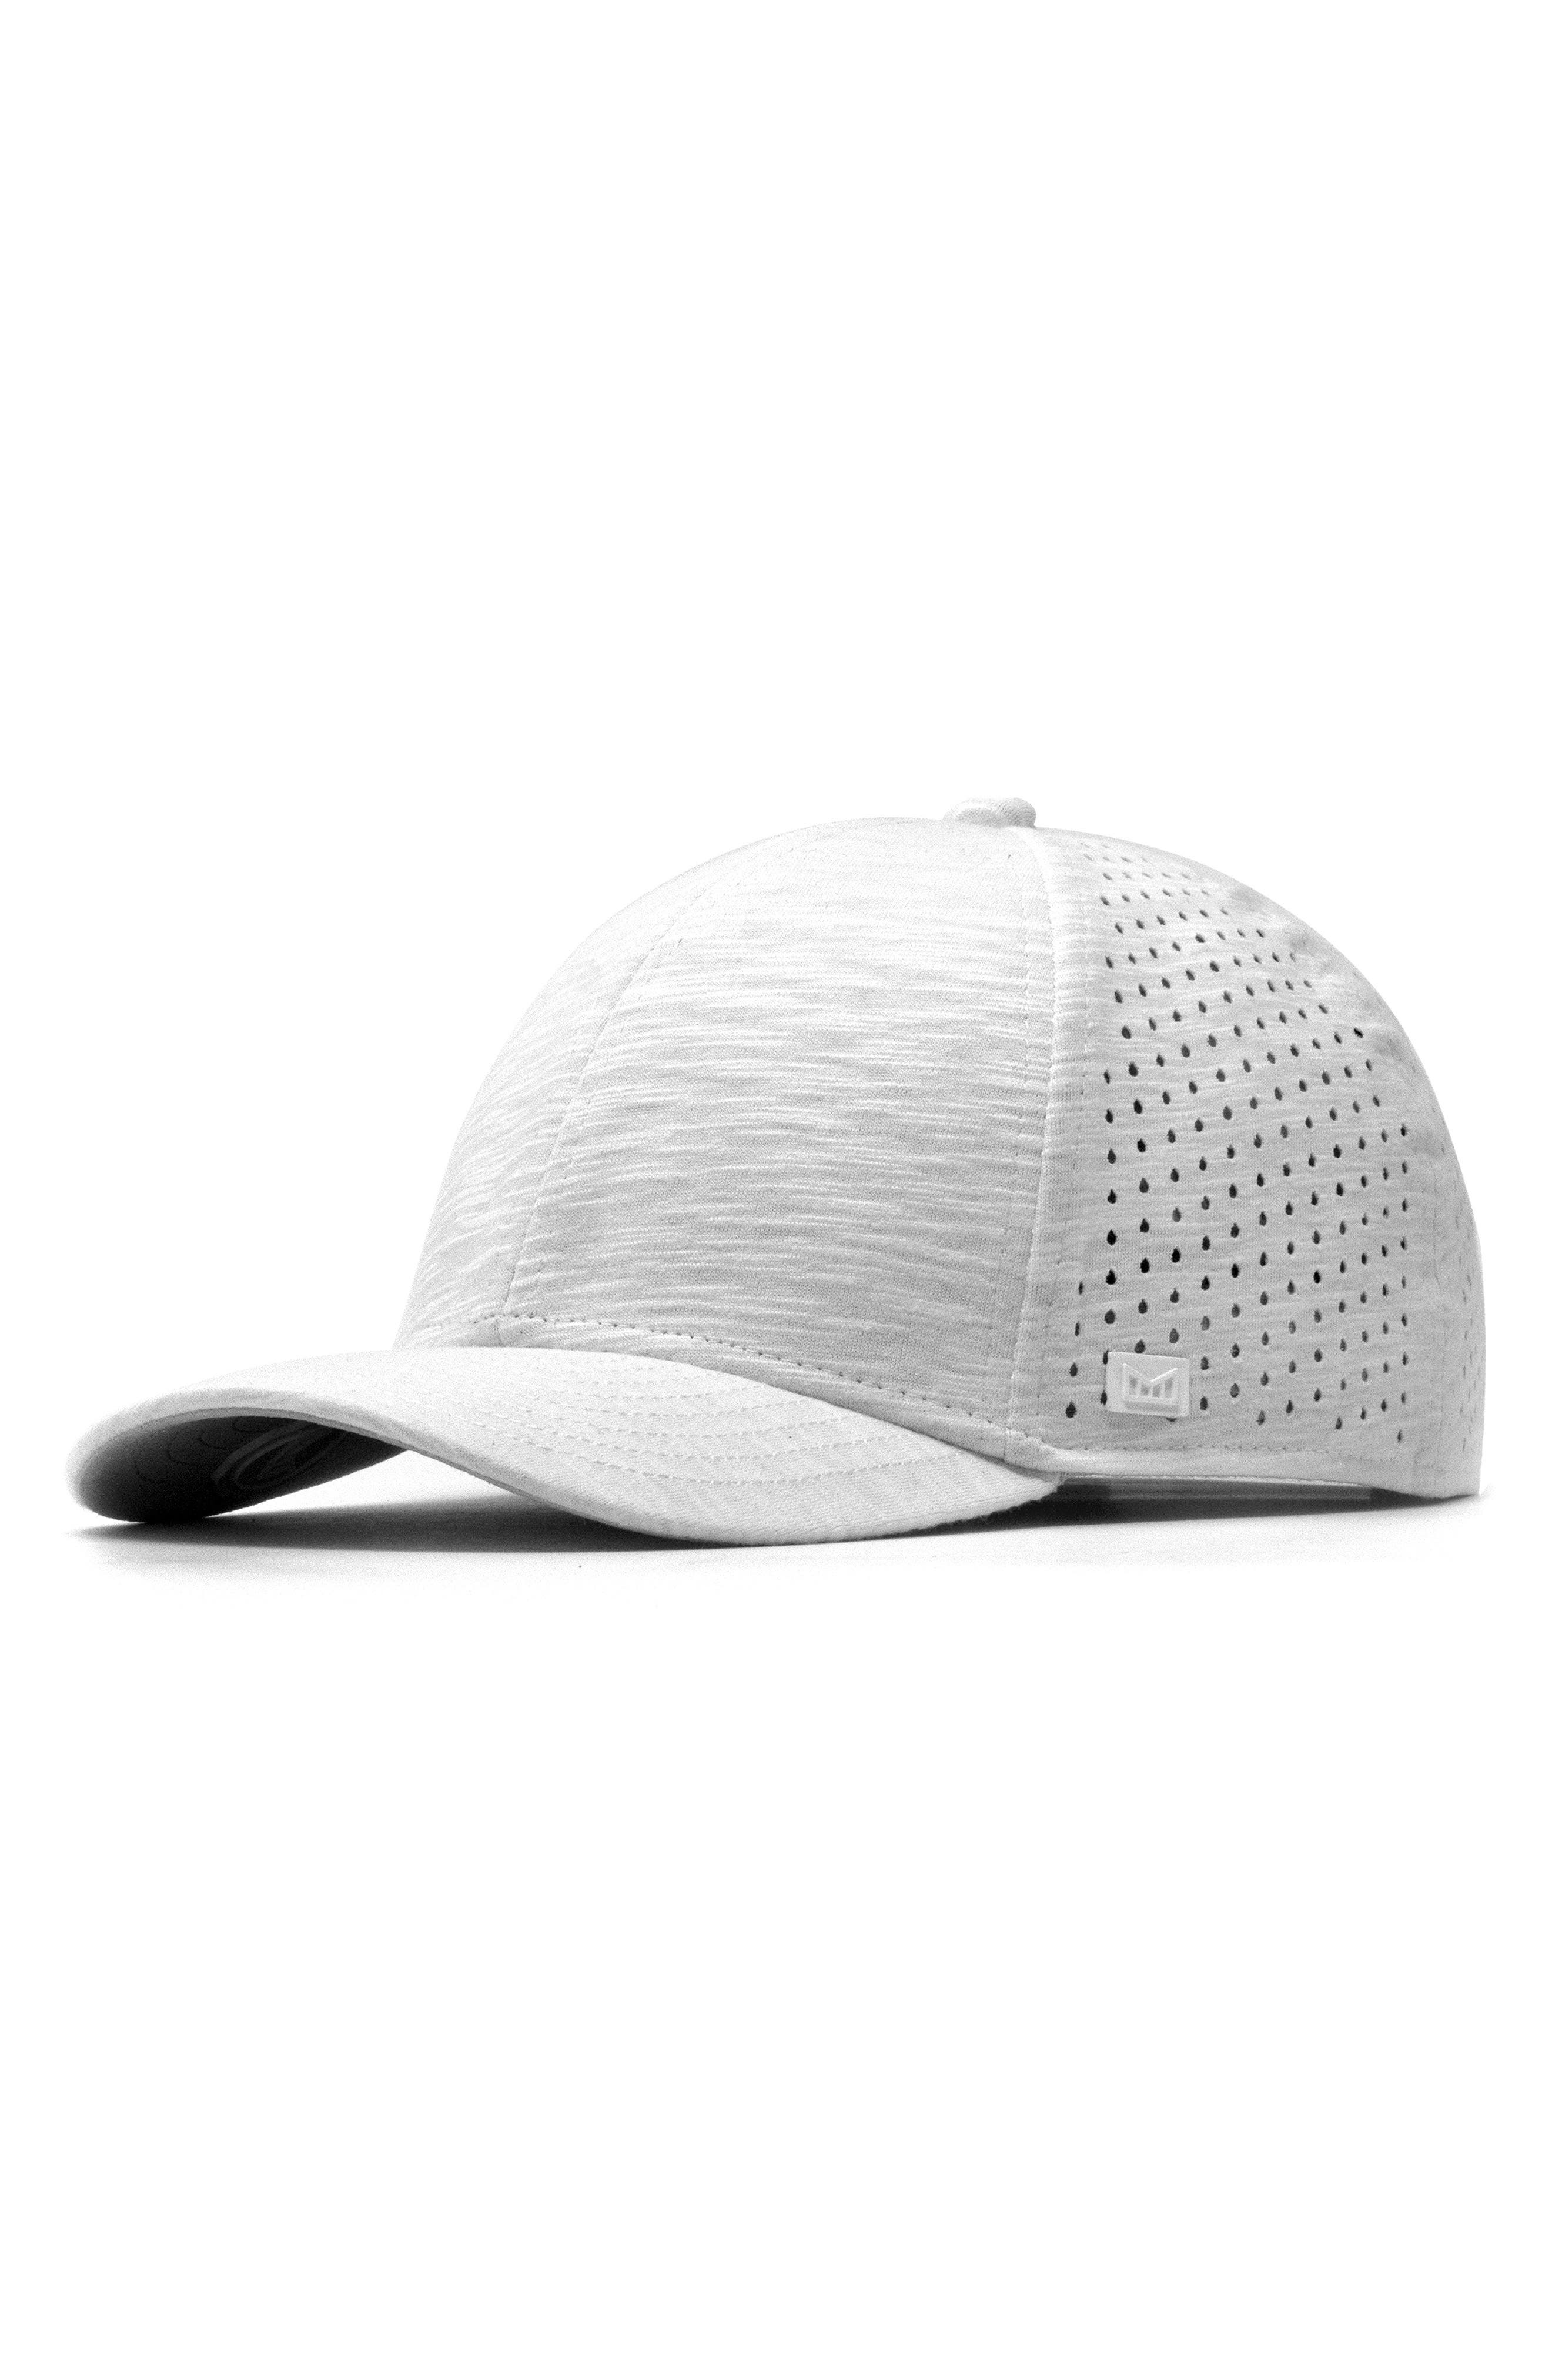 MELIN The A-Game Ball Cap - White in Heather White